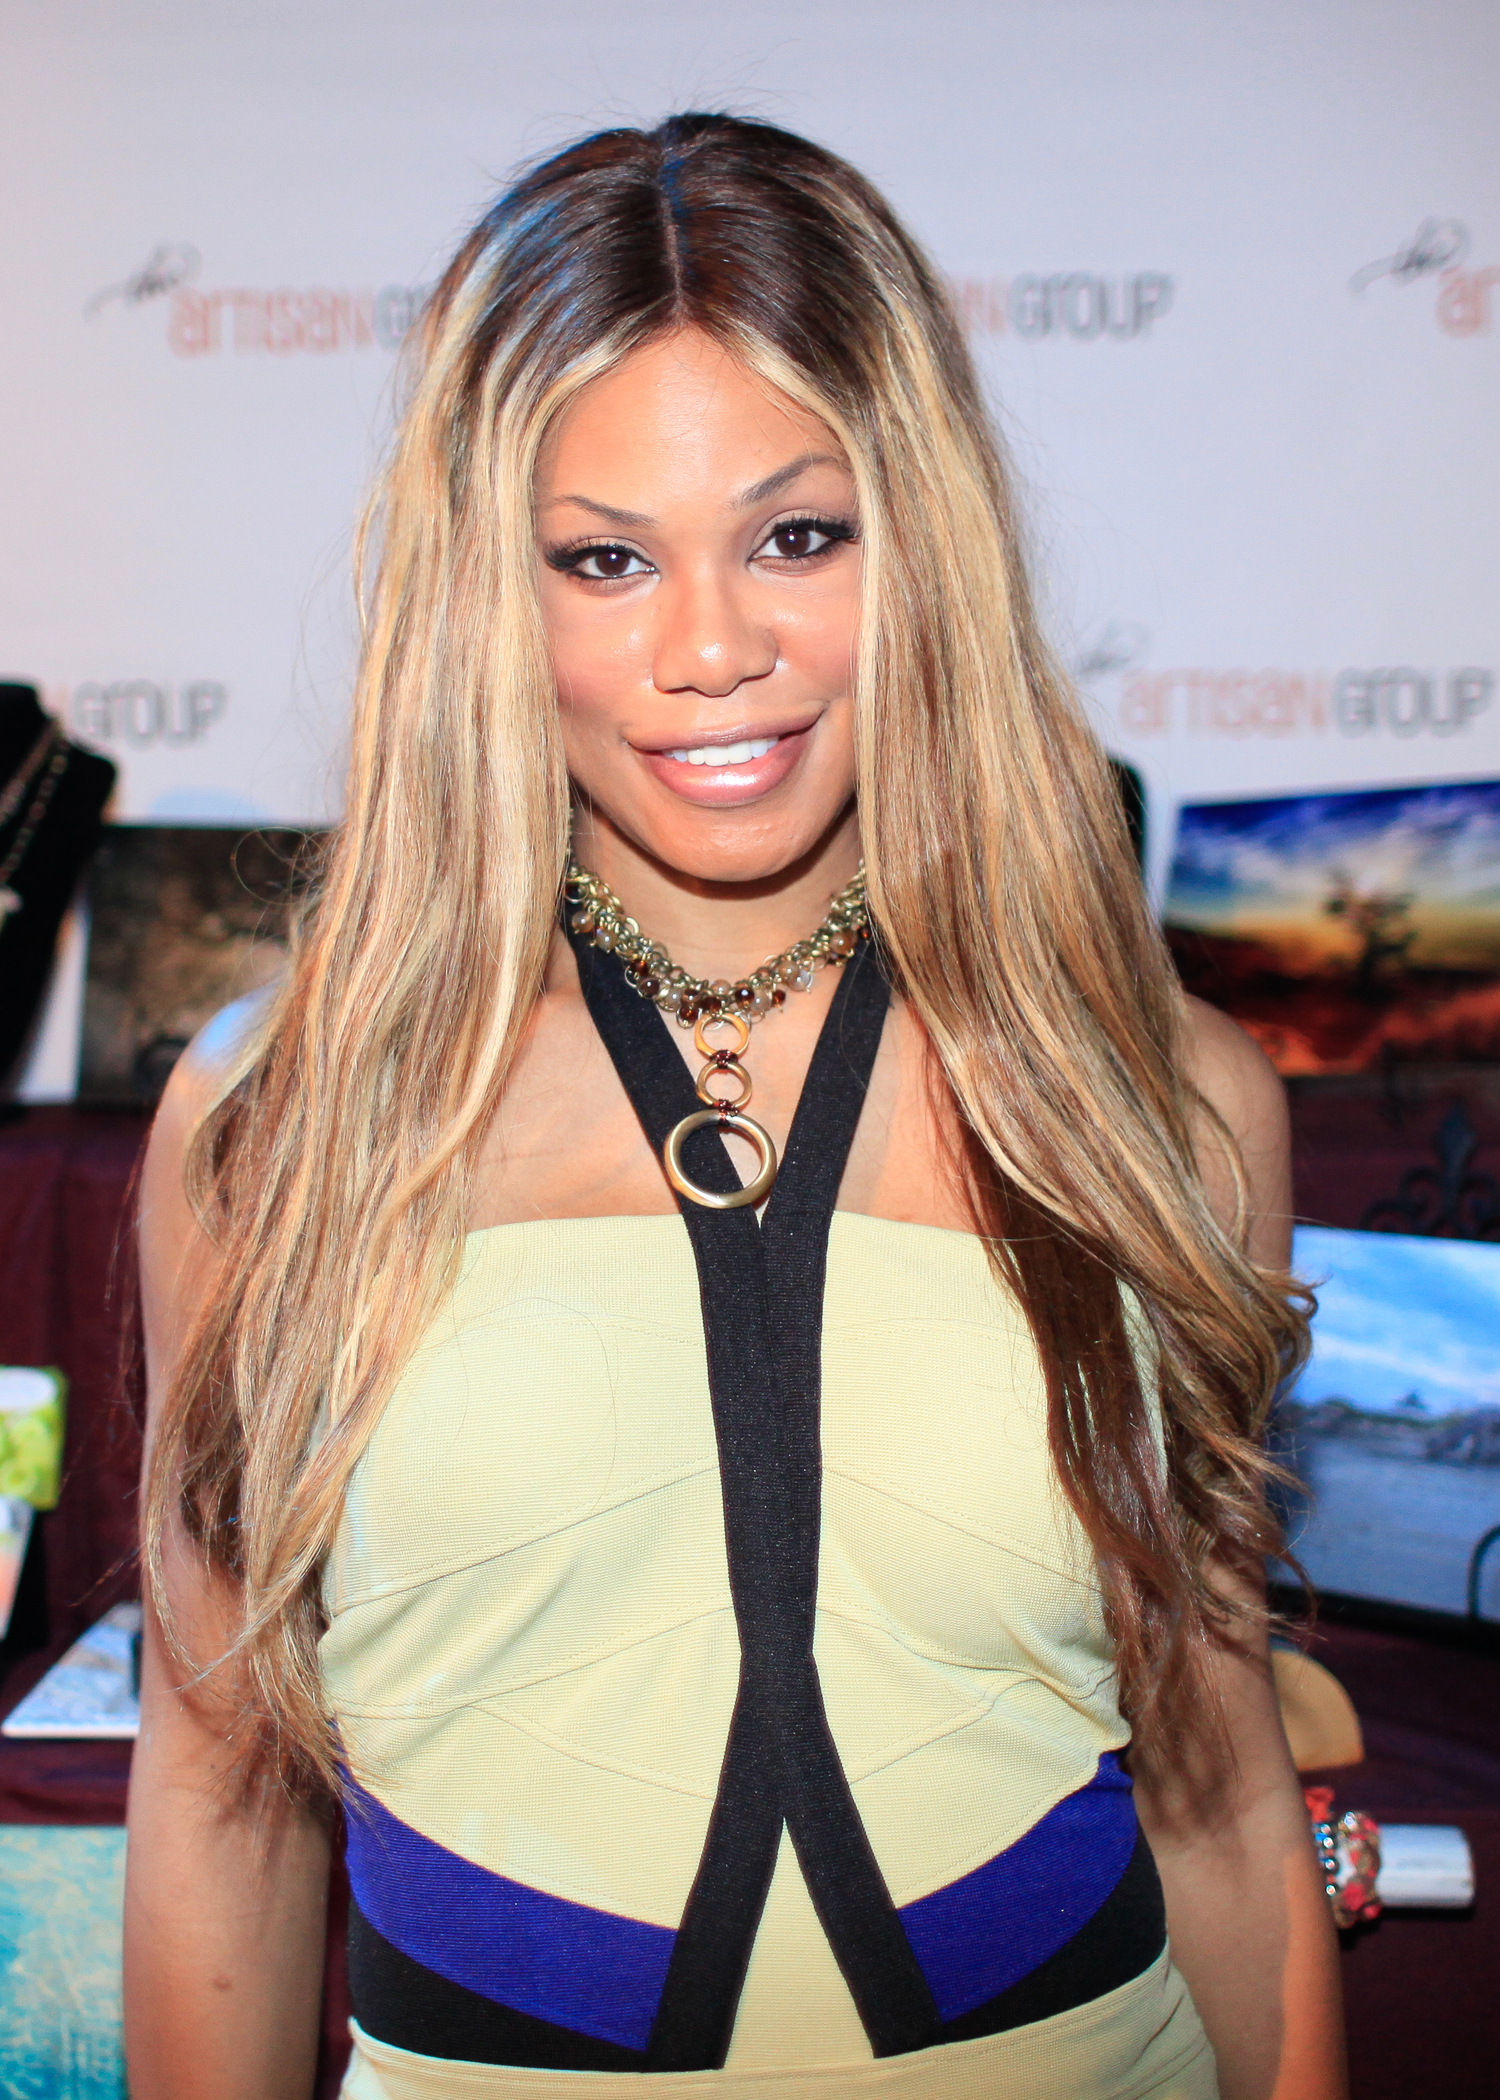 T. Victoria on Laverne Cox of Orange Is The New Black